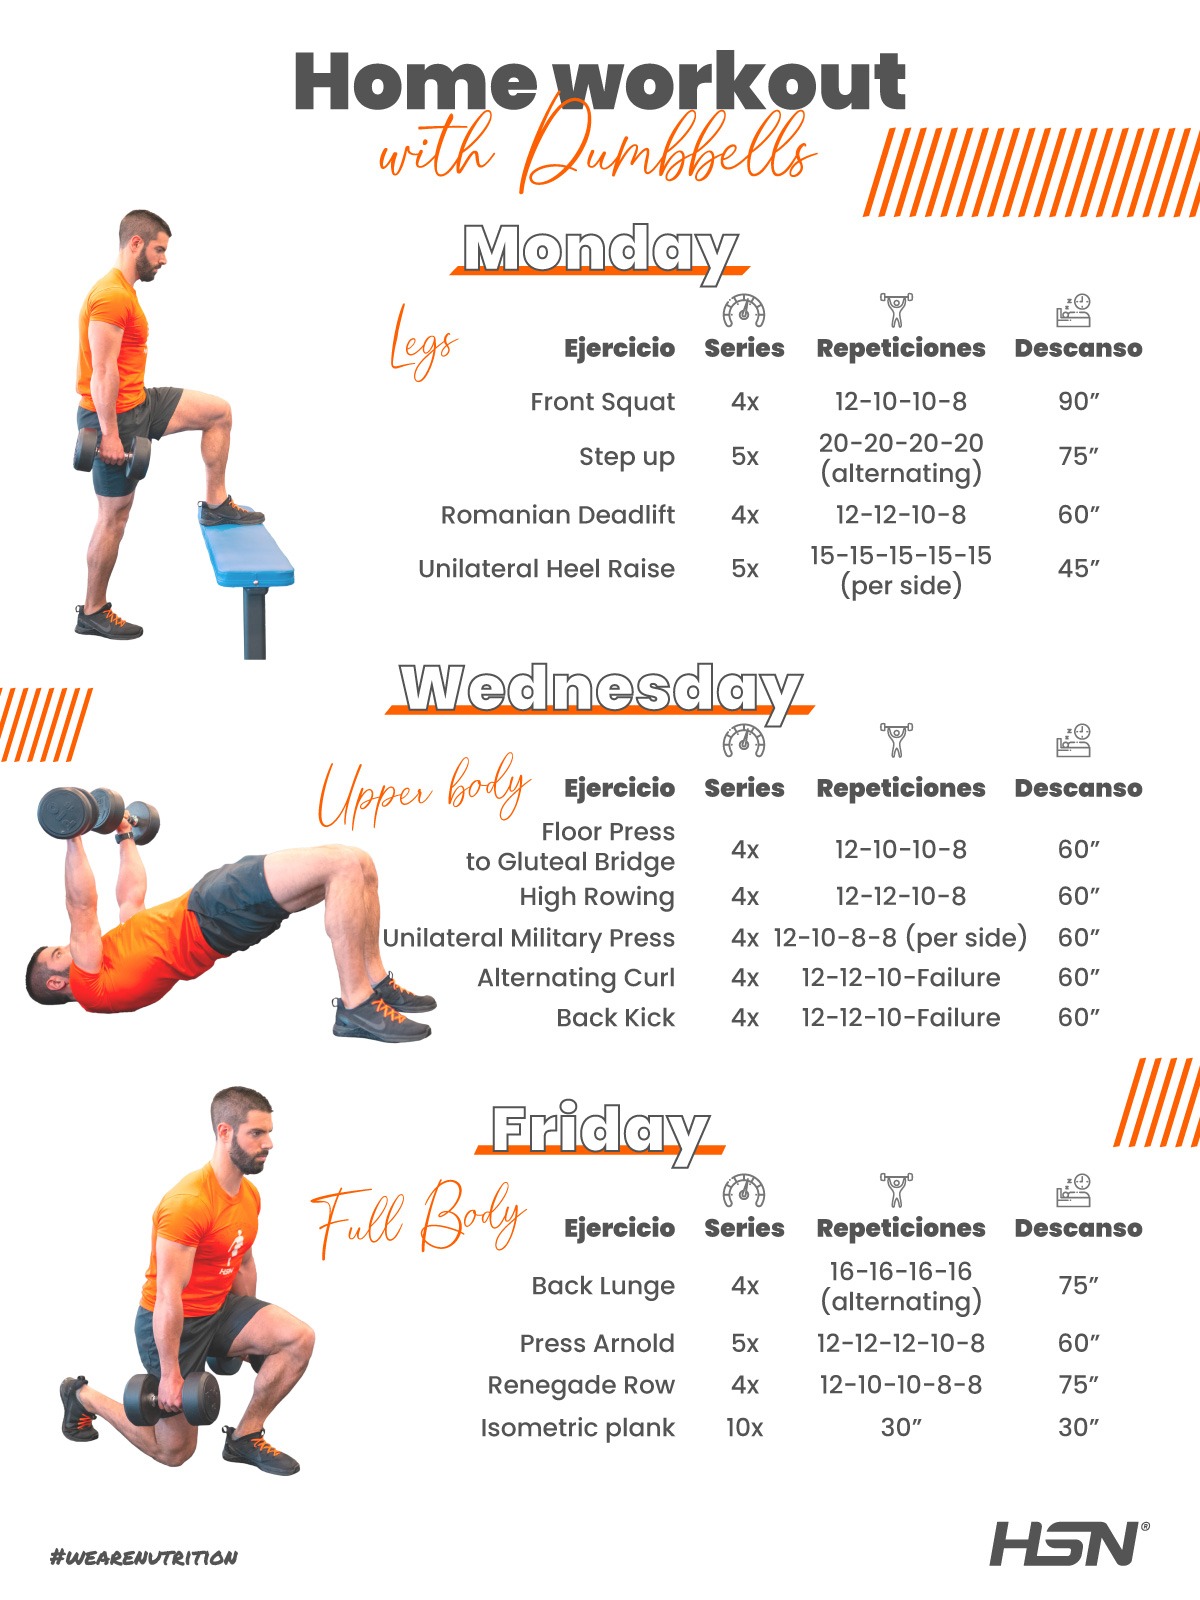 Home Training with Dumbbells. Month 2 and 3